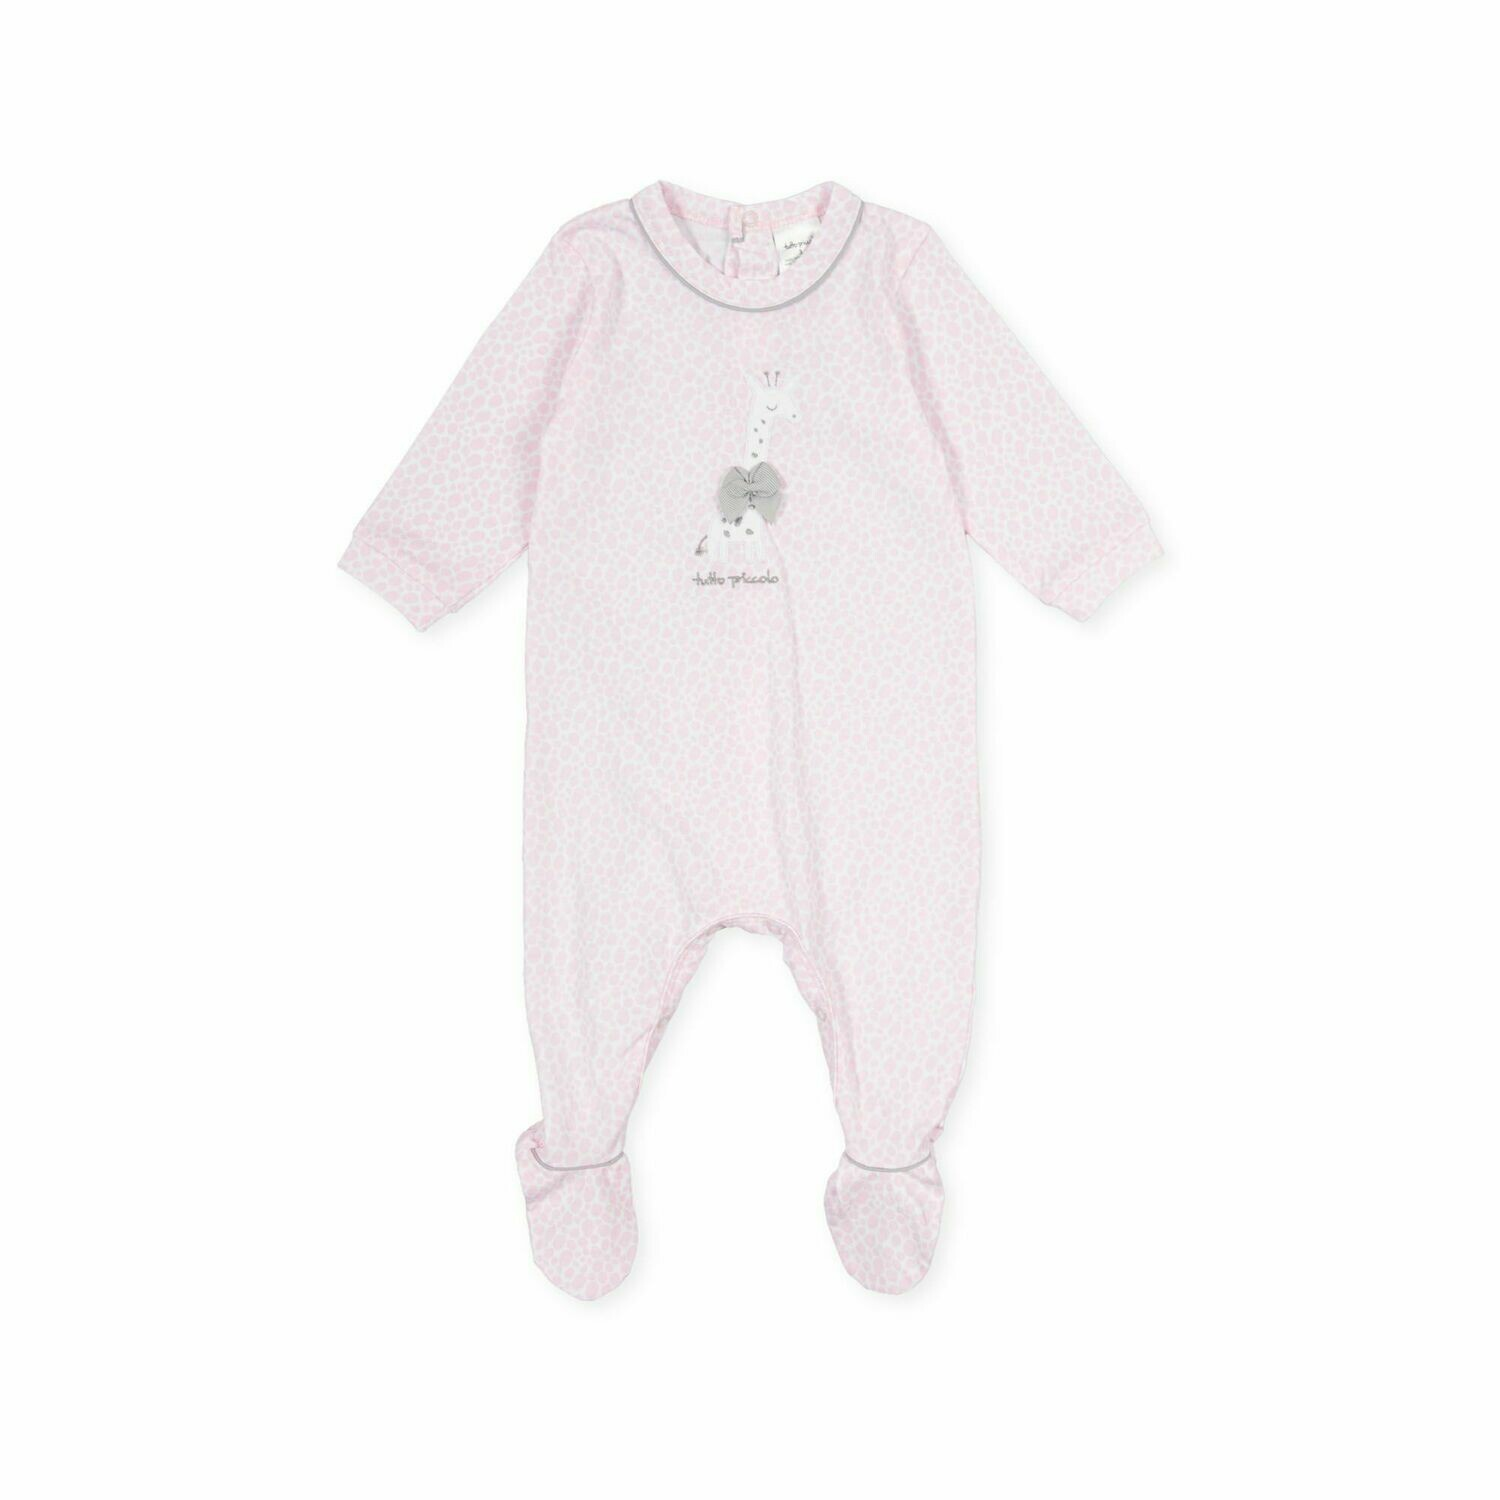 Tutto Piccolo Baby Girl Pink One Piece with feet in and pale pink Girraffe print